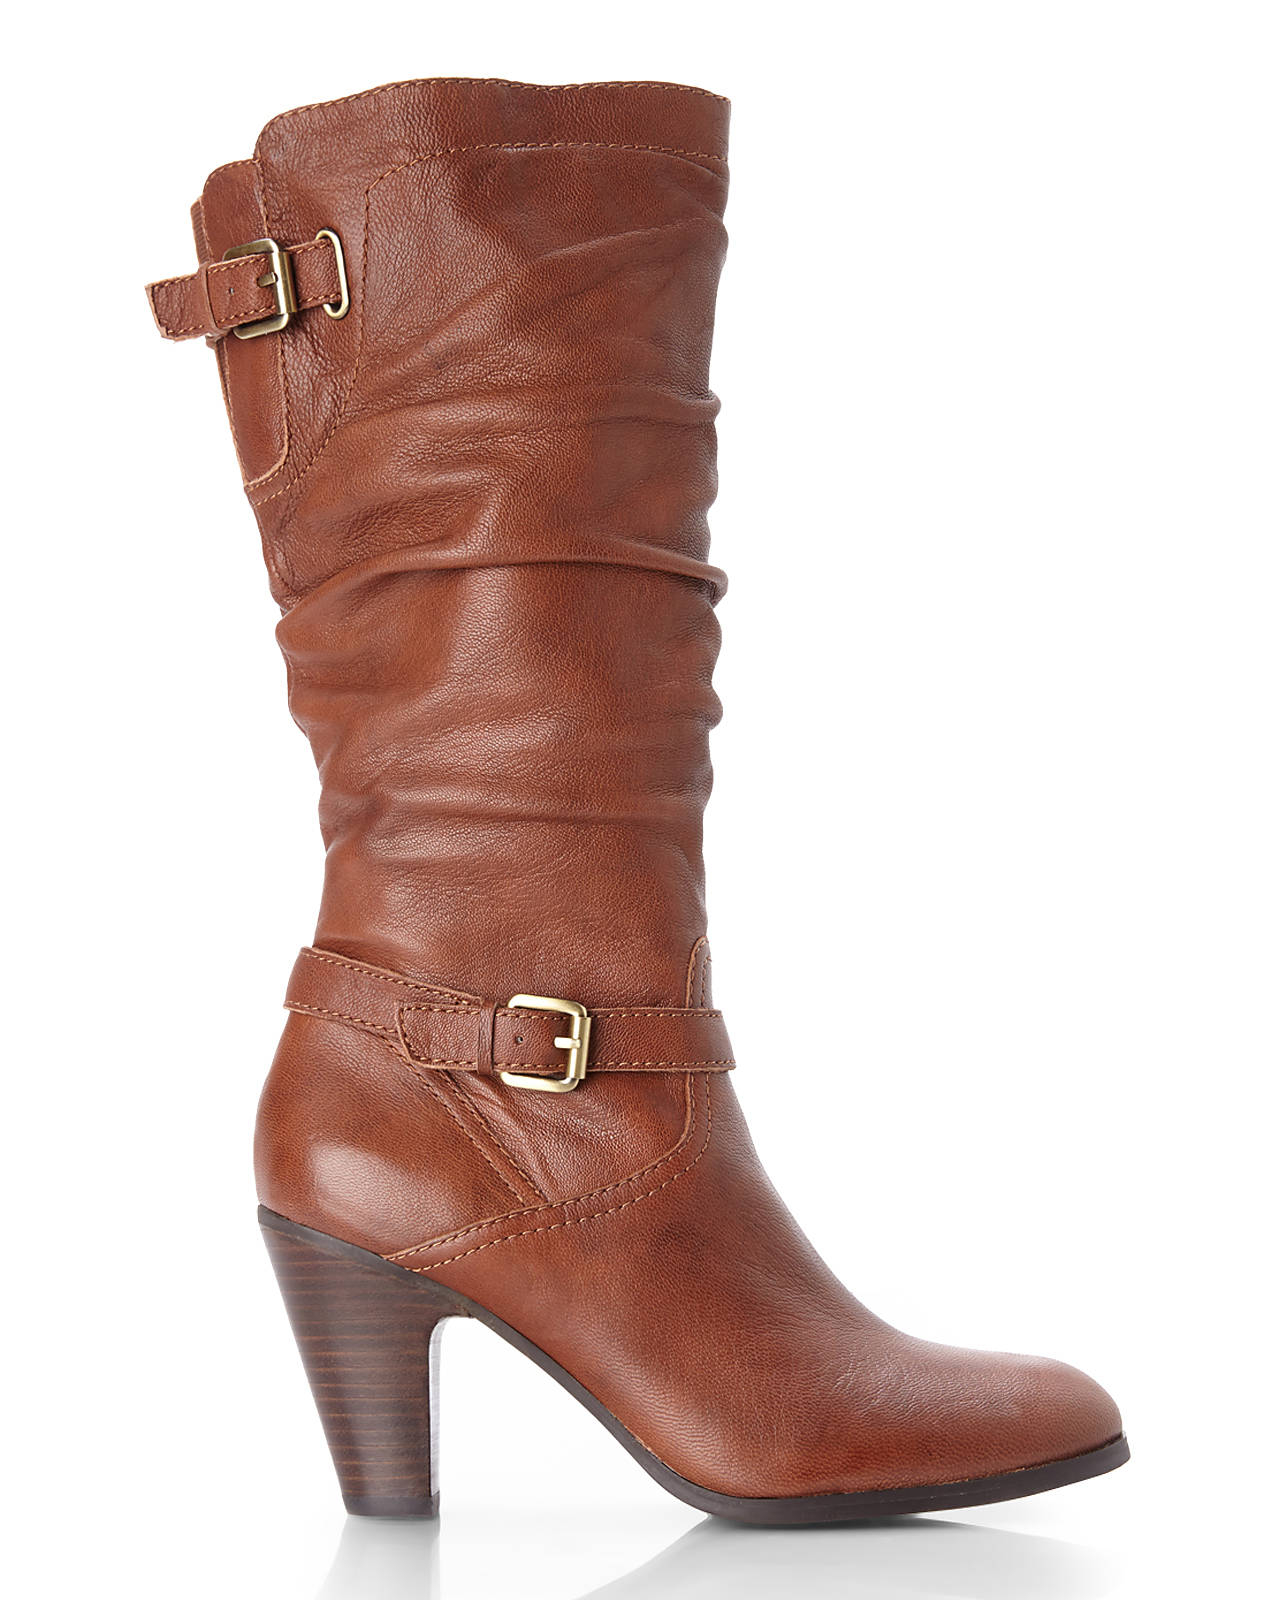 1996399dfd5 Guess Brown Cognac Magy Slouch Boots